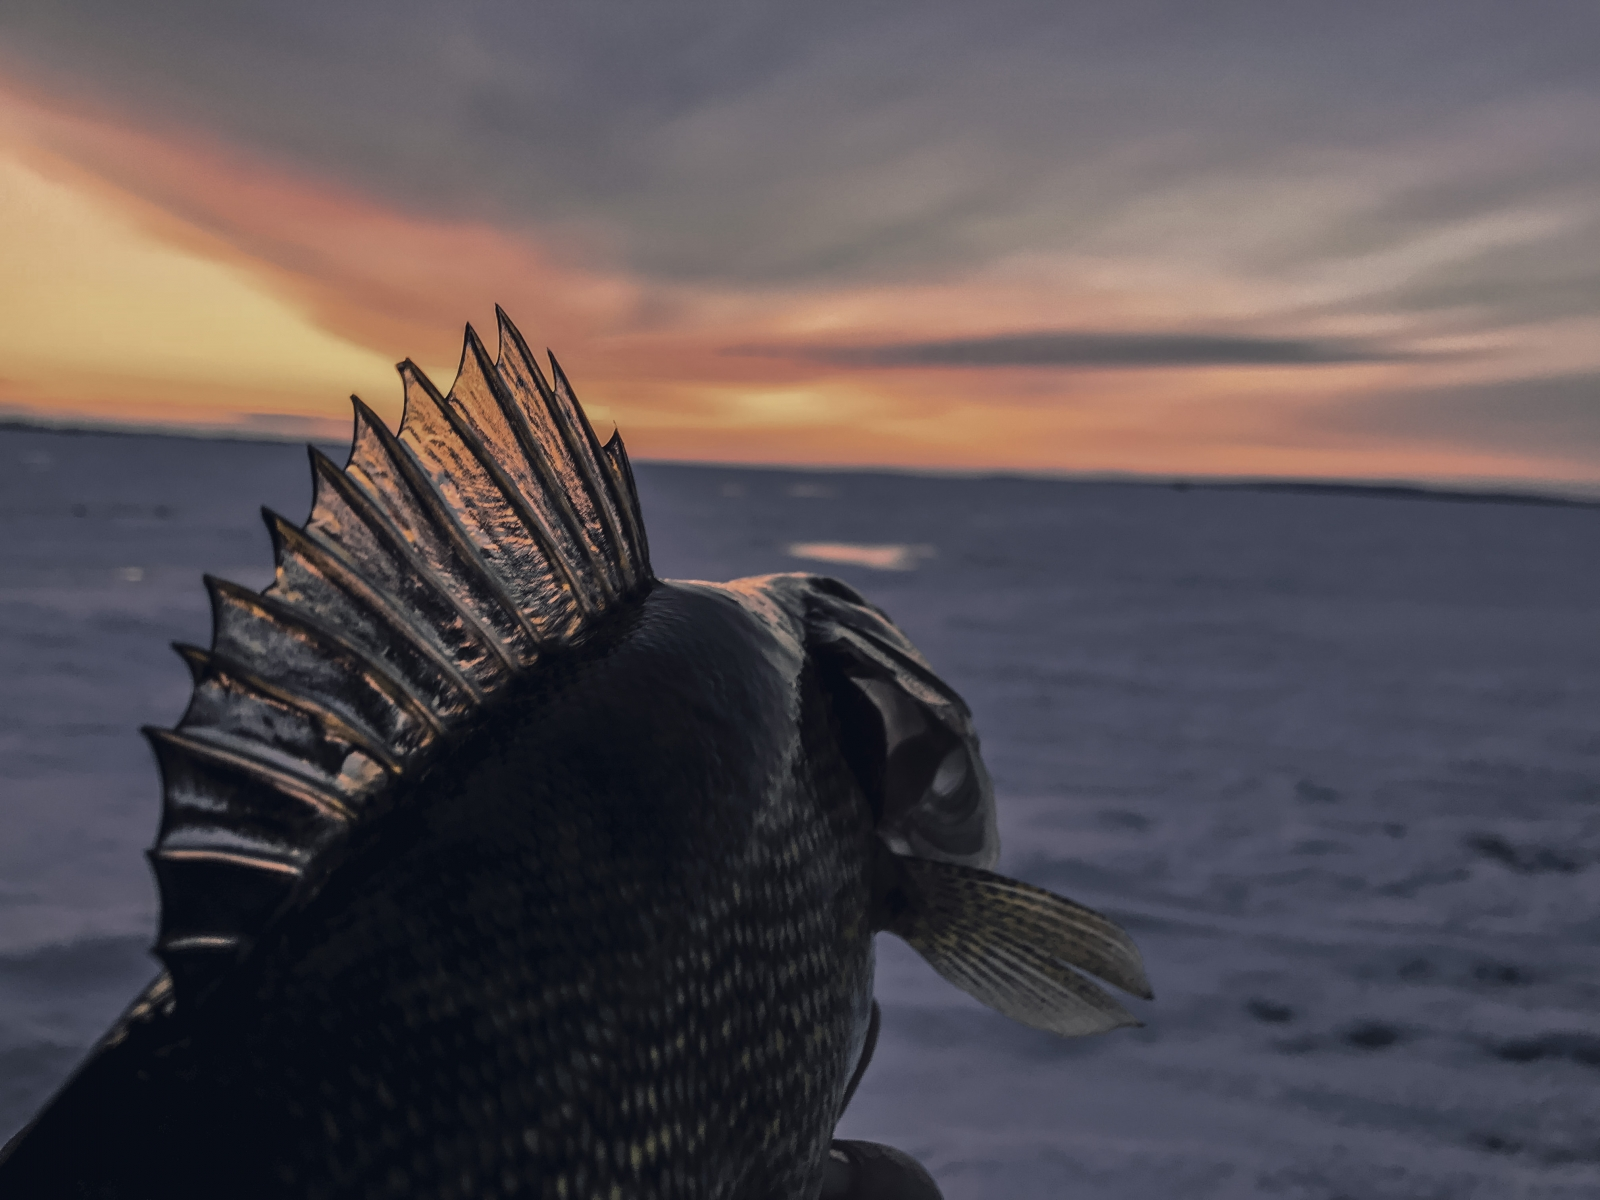 Winter Time Sunsets are Best With a Fish in Hand